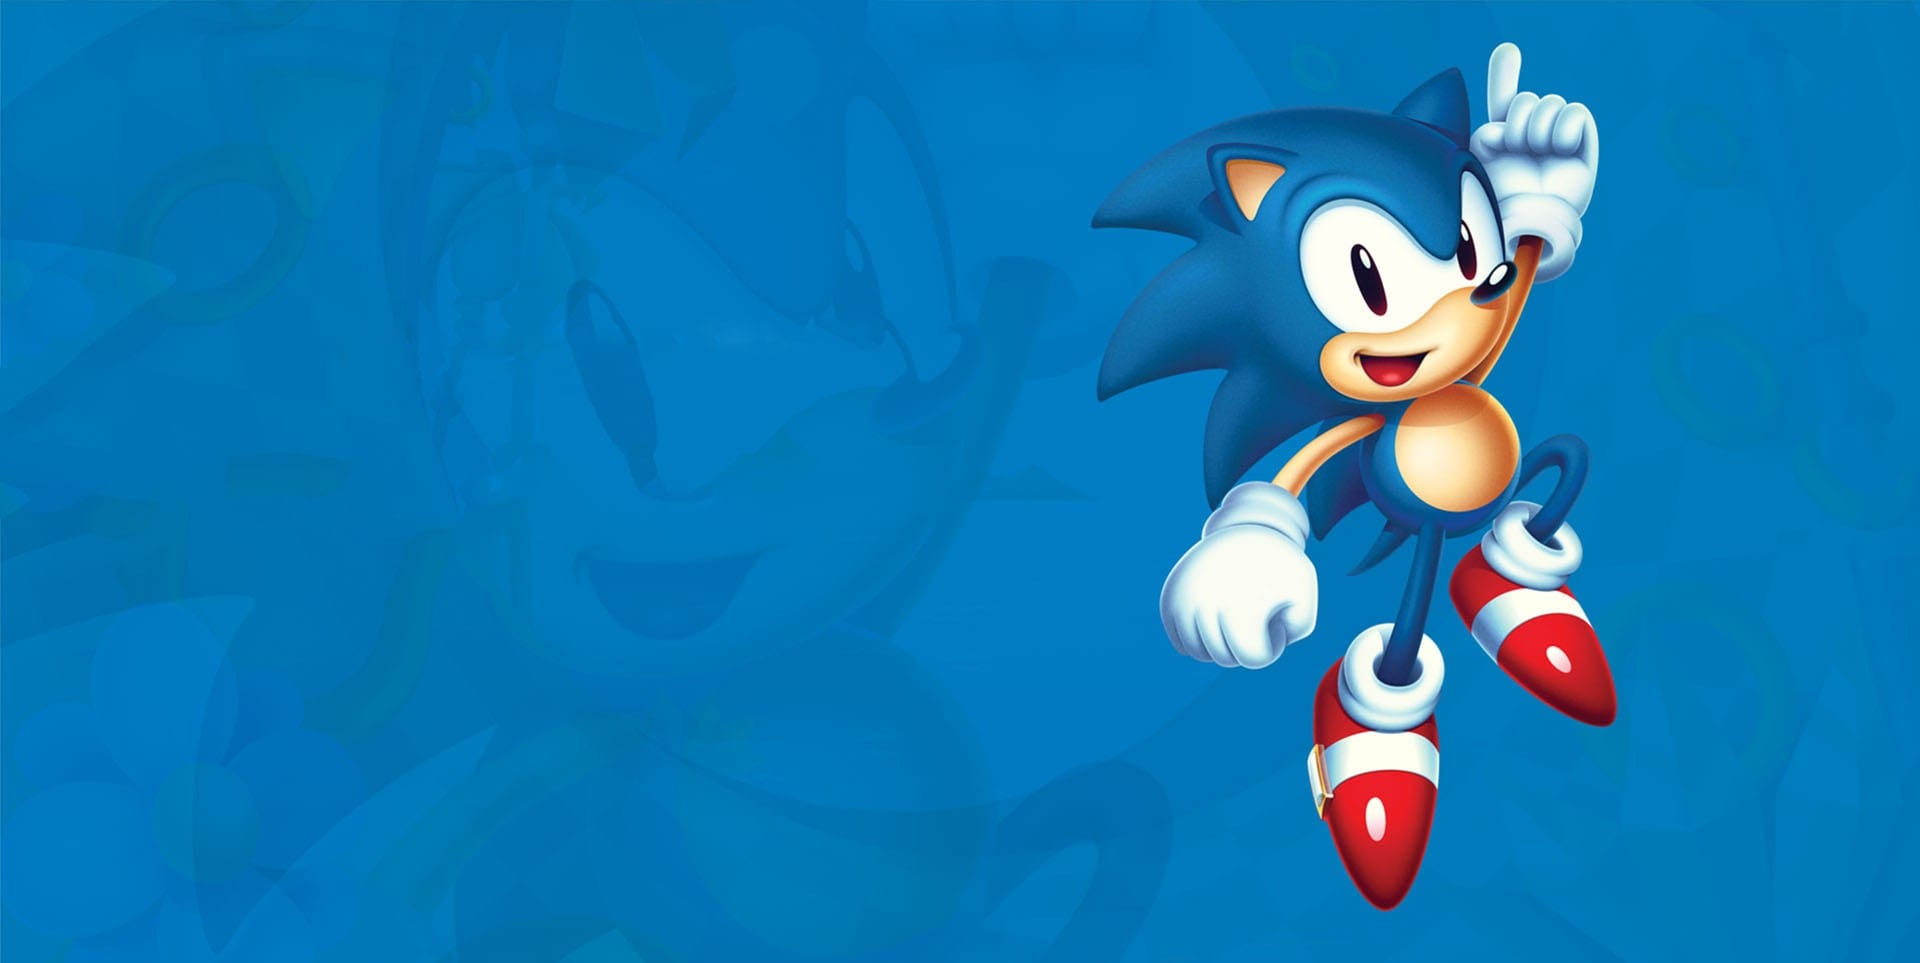 10 Memorable Sonic The Hedgehog Moments To Celebrate His Movie Debut